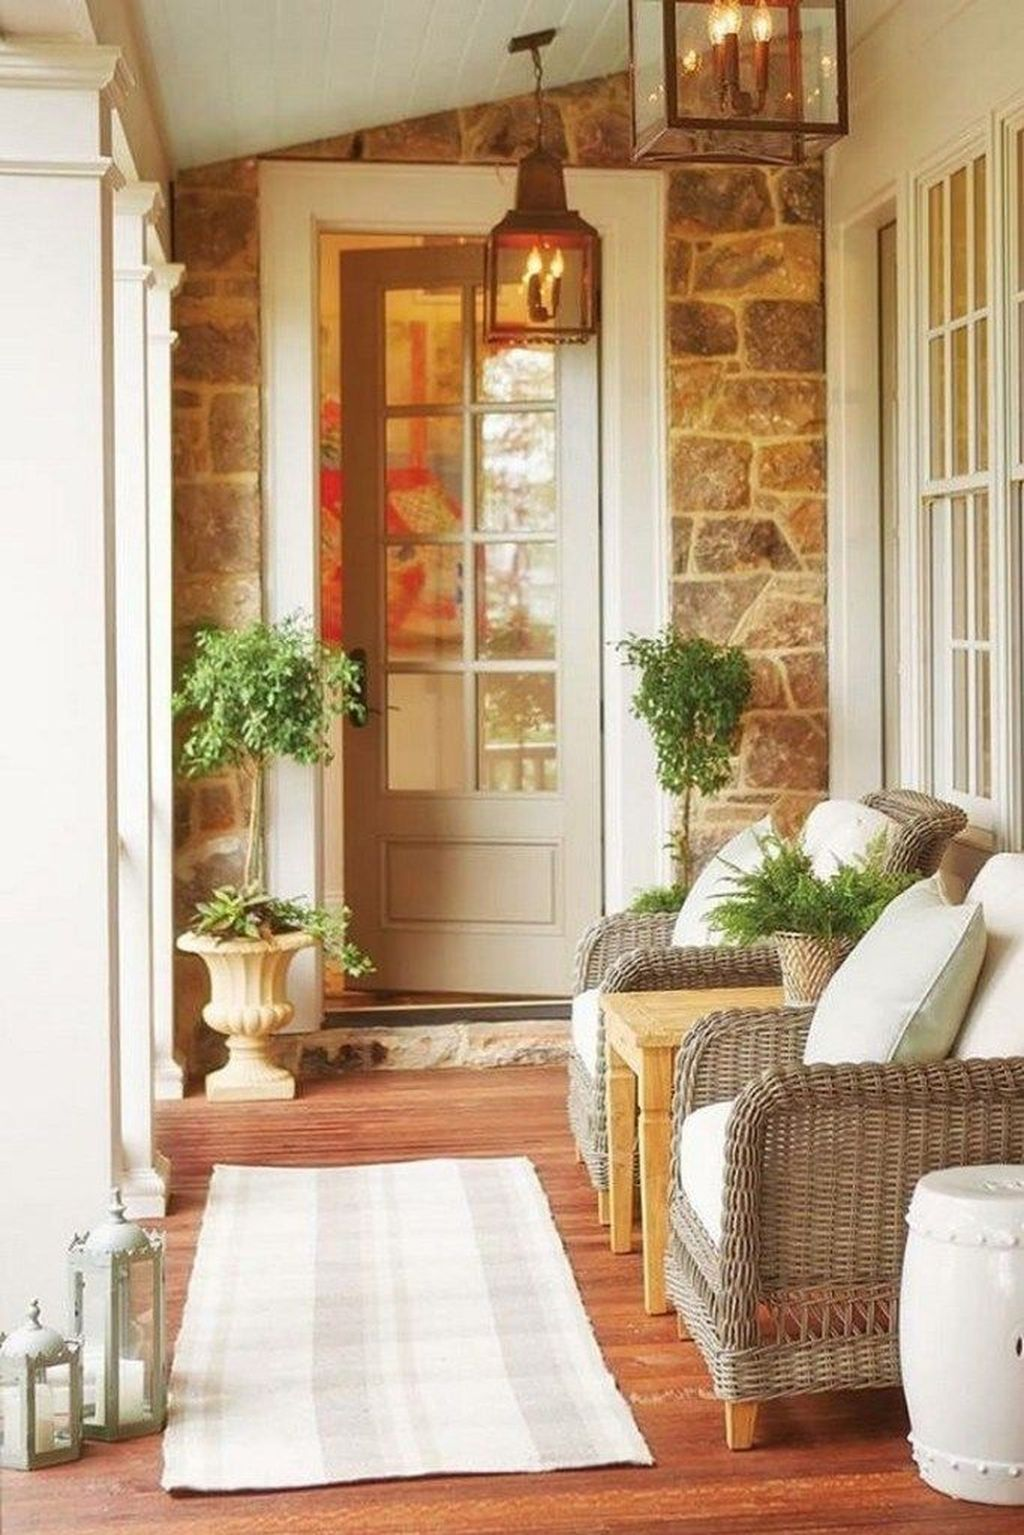 Inspiring Farmhouse Front Porch Decor Ideas 26